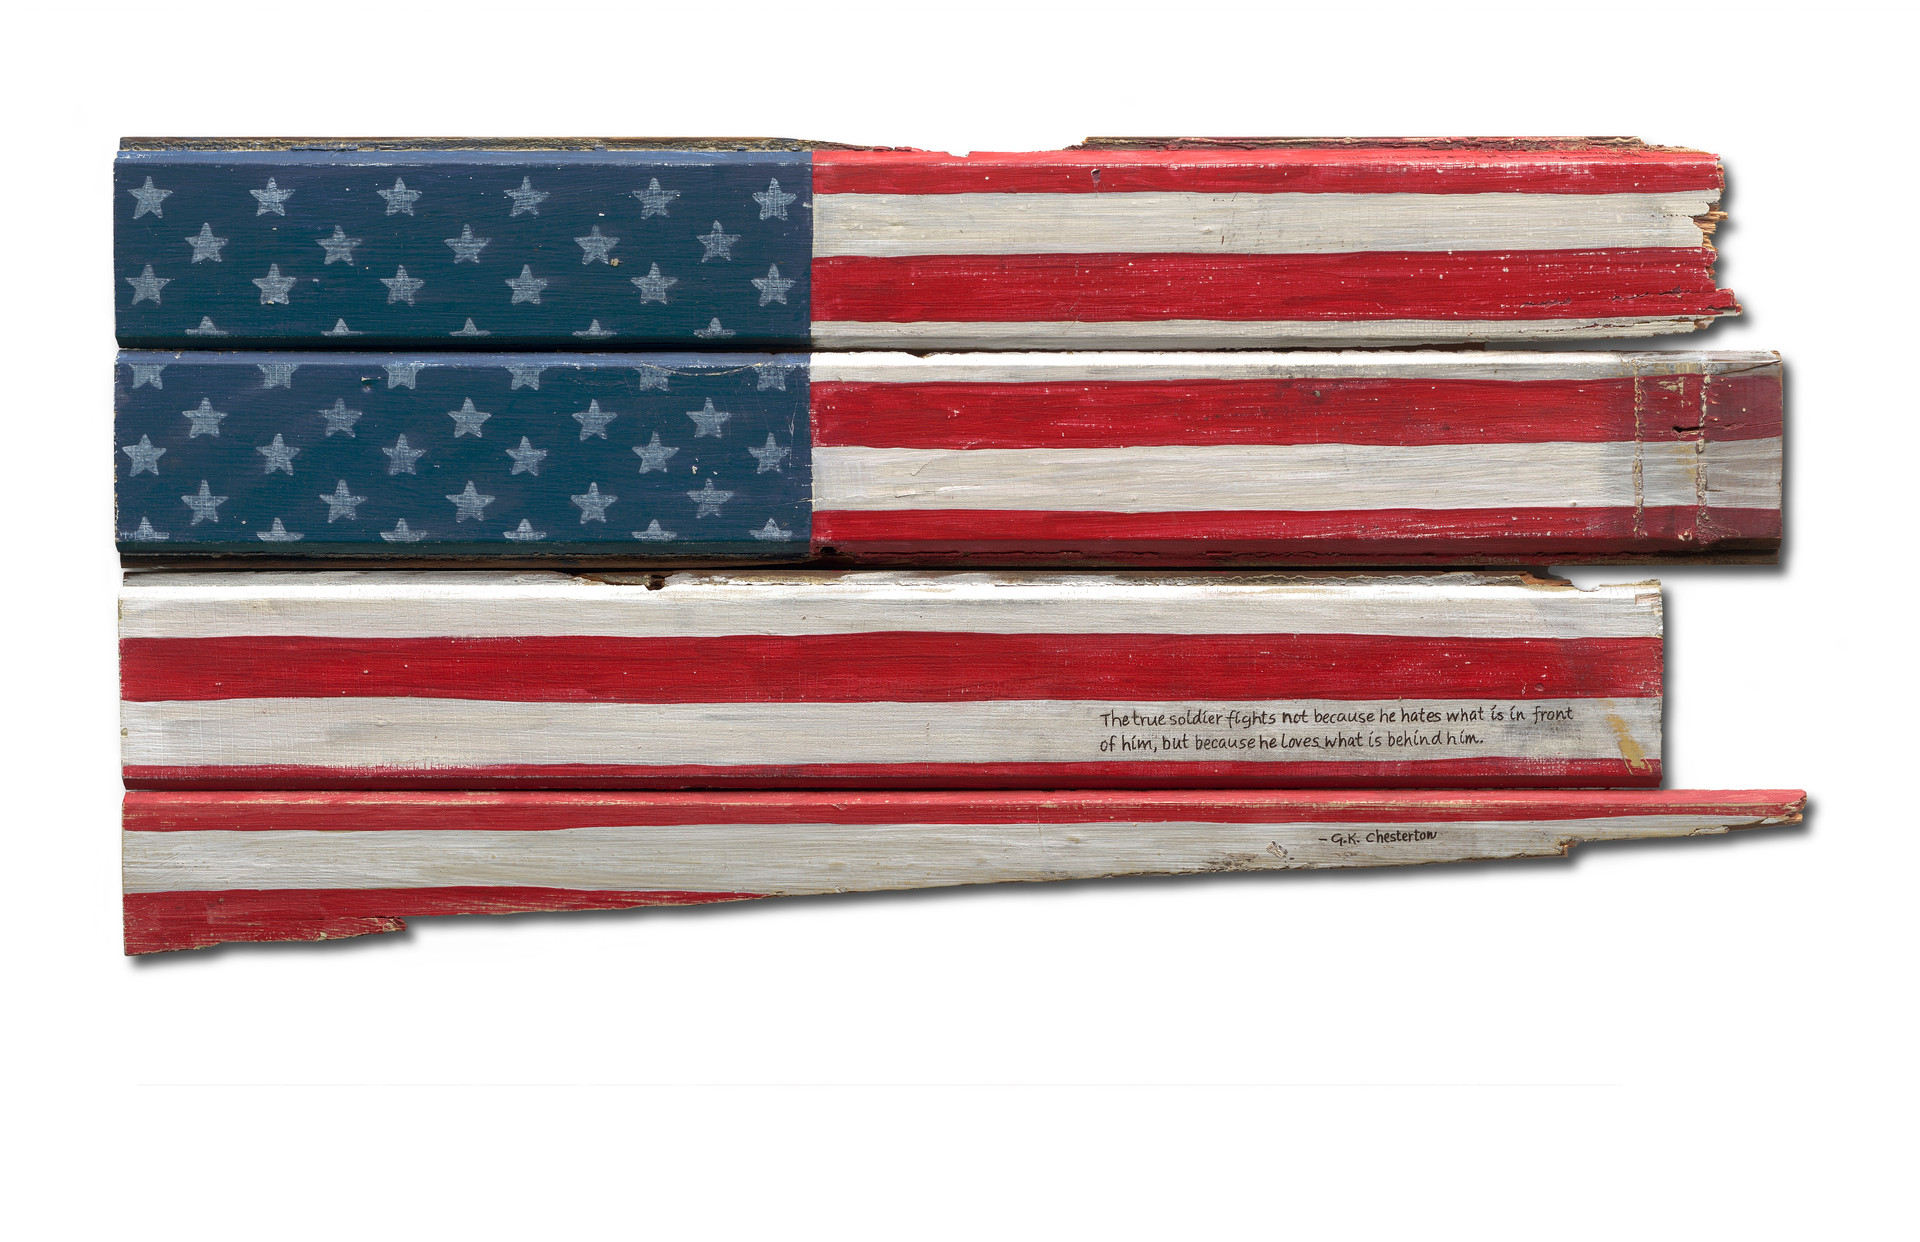 American Flag #38 - The True Soldier